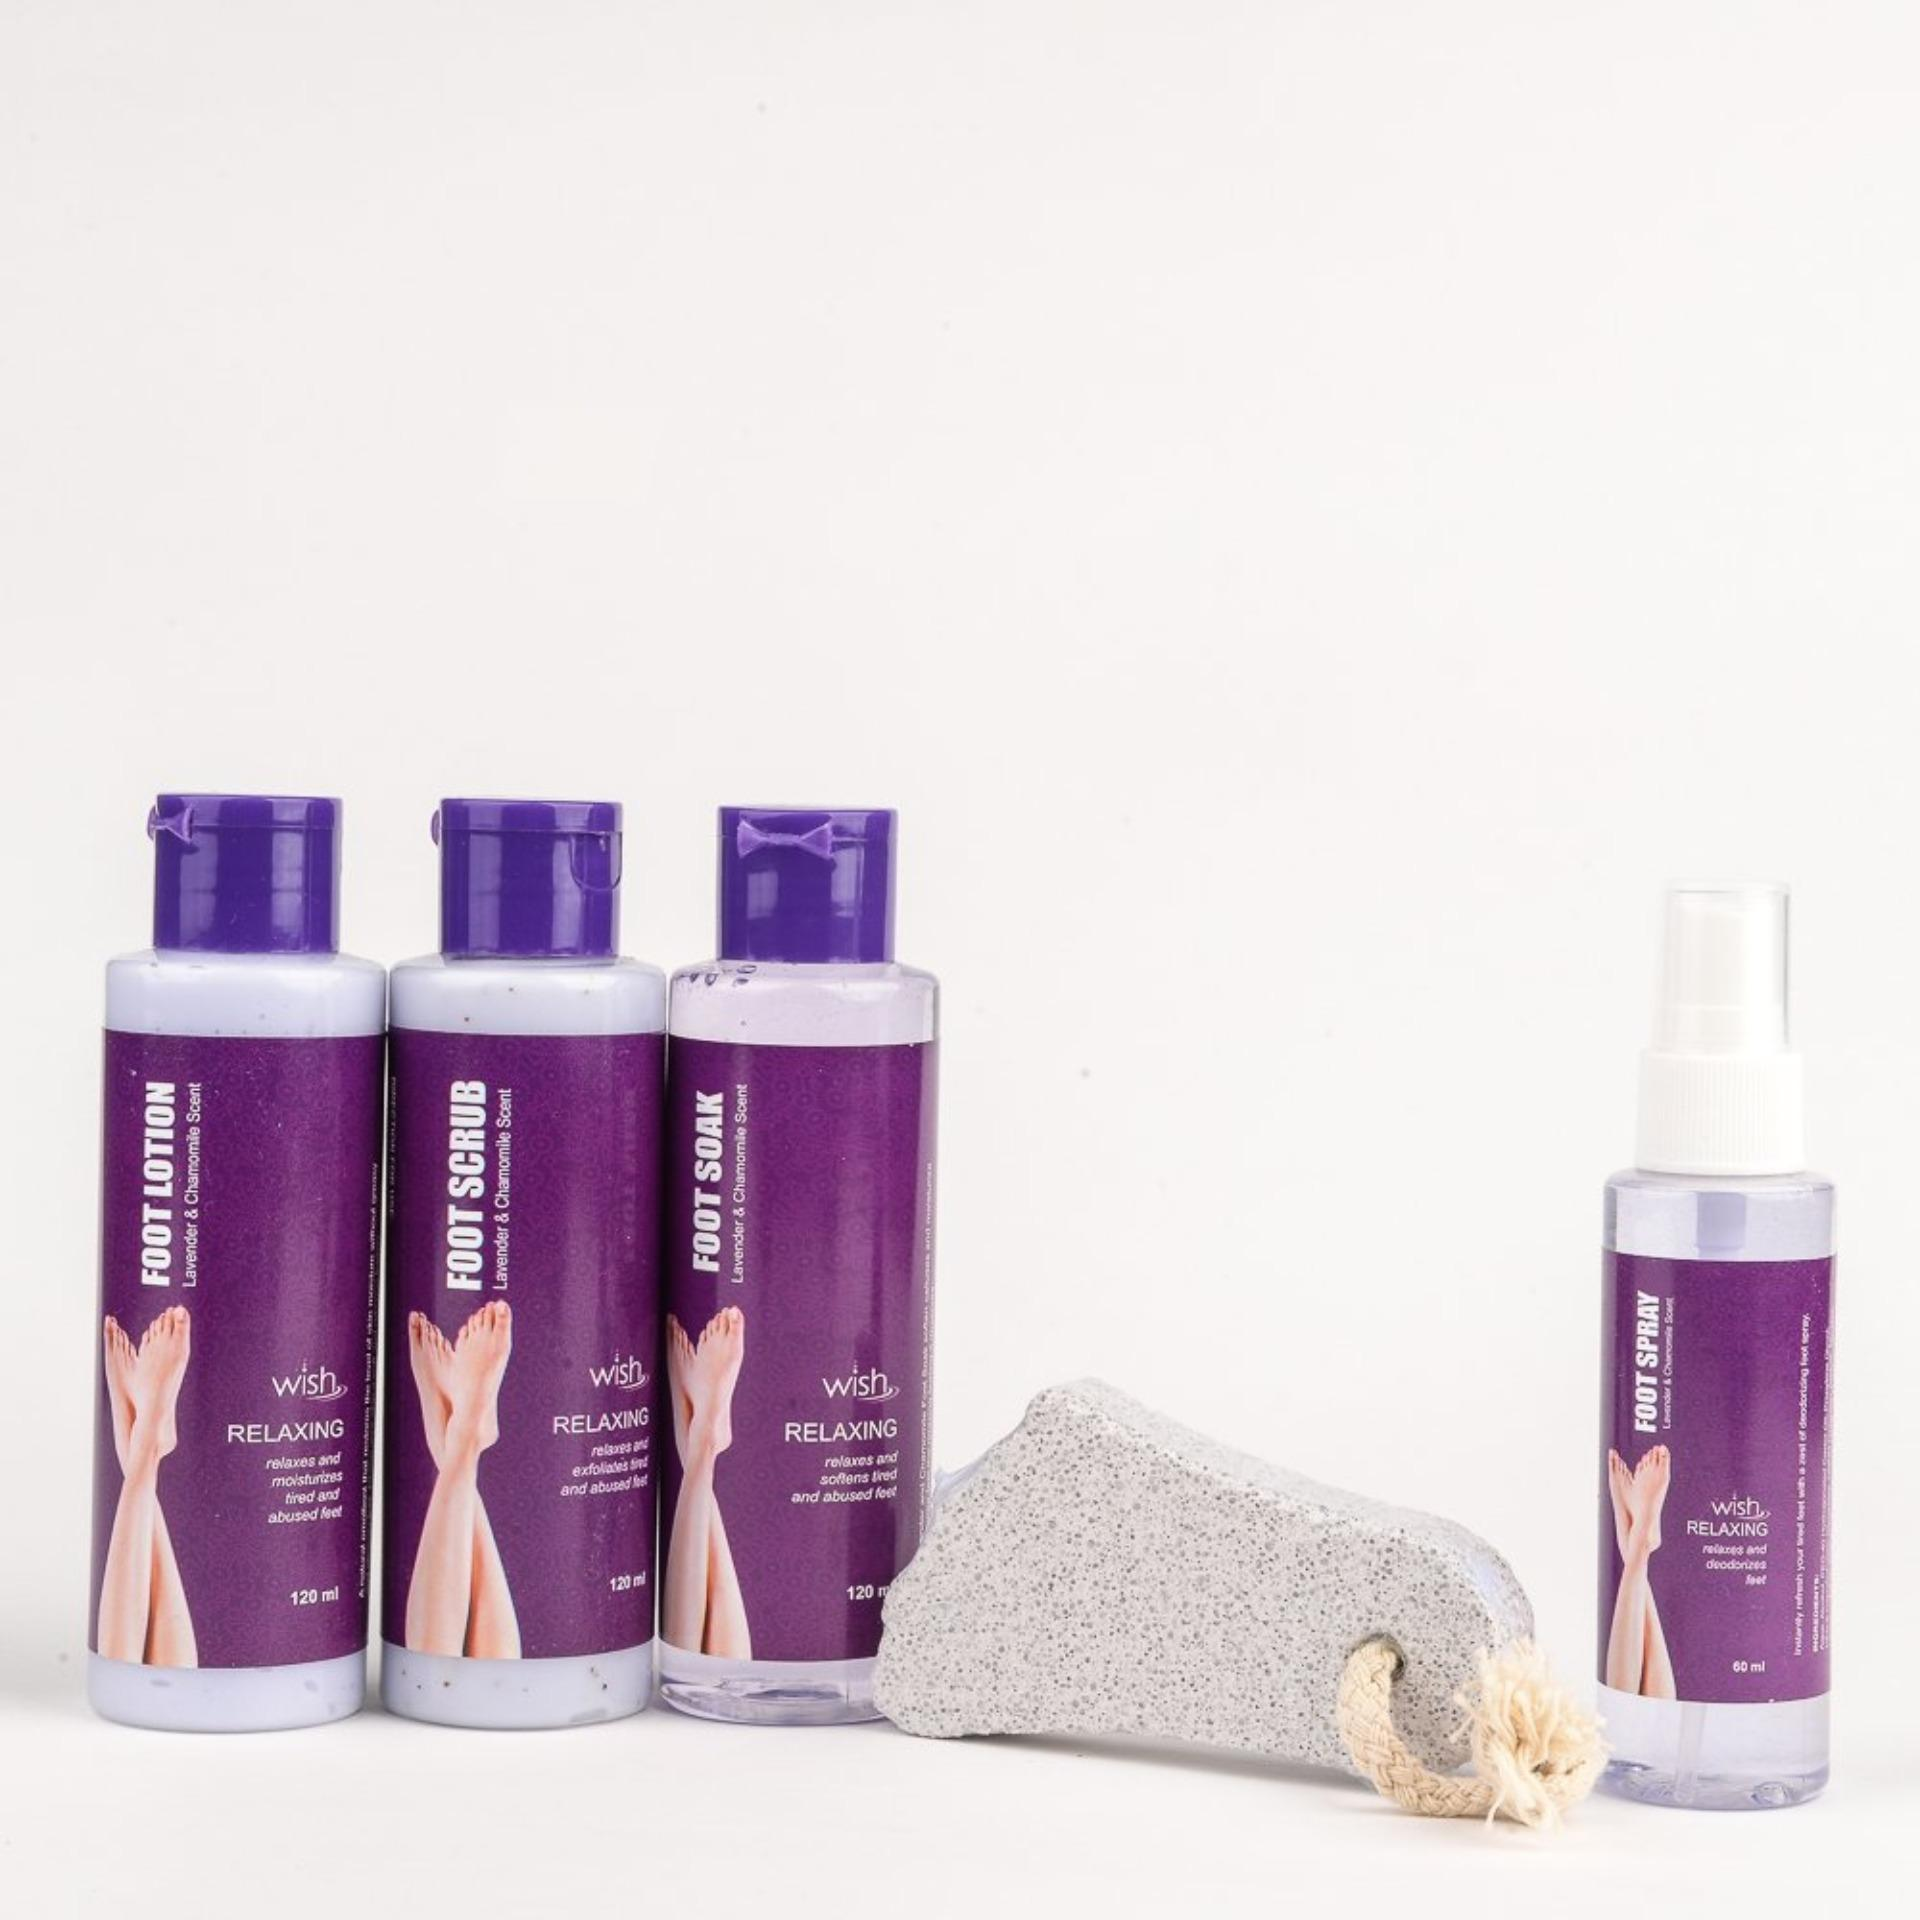 467b36a2db2d Wish Lavender And Chamomile Foot Spa Set 5Pc Set